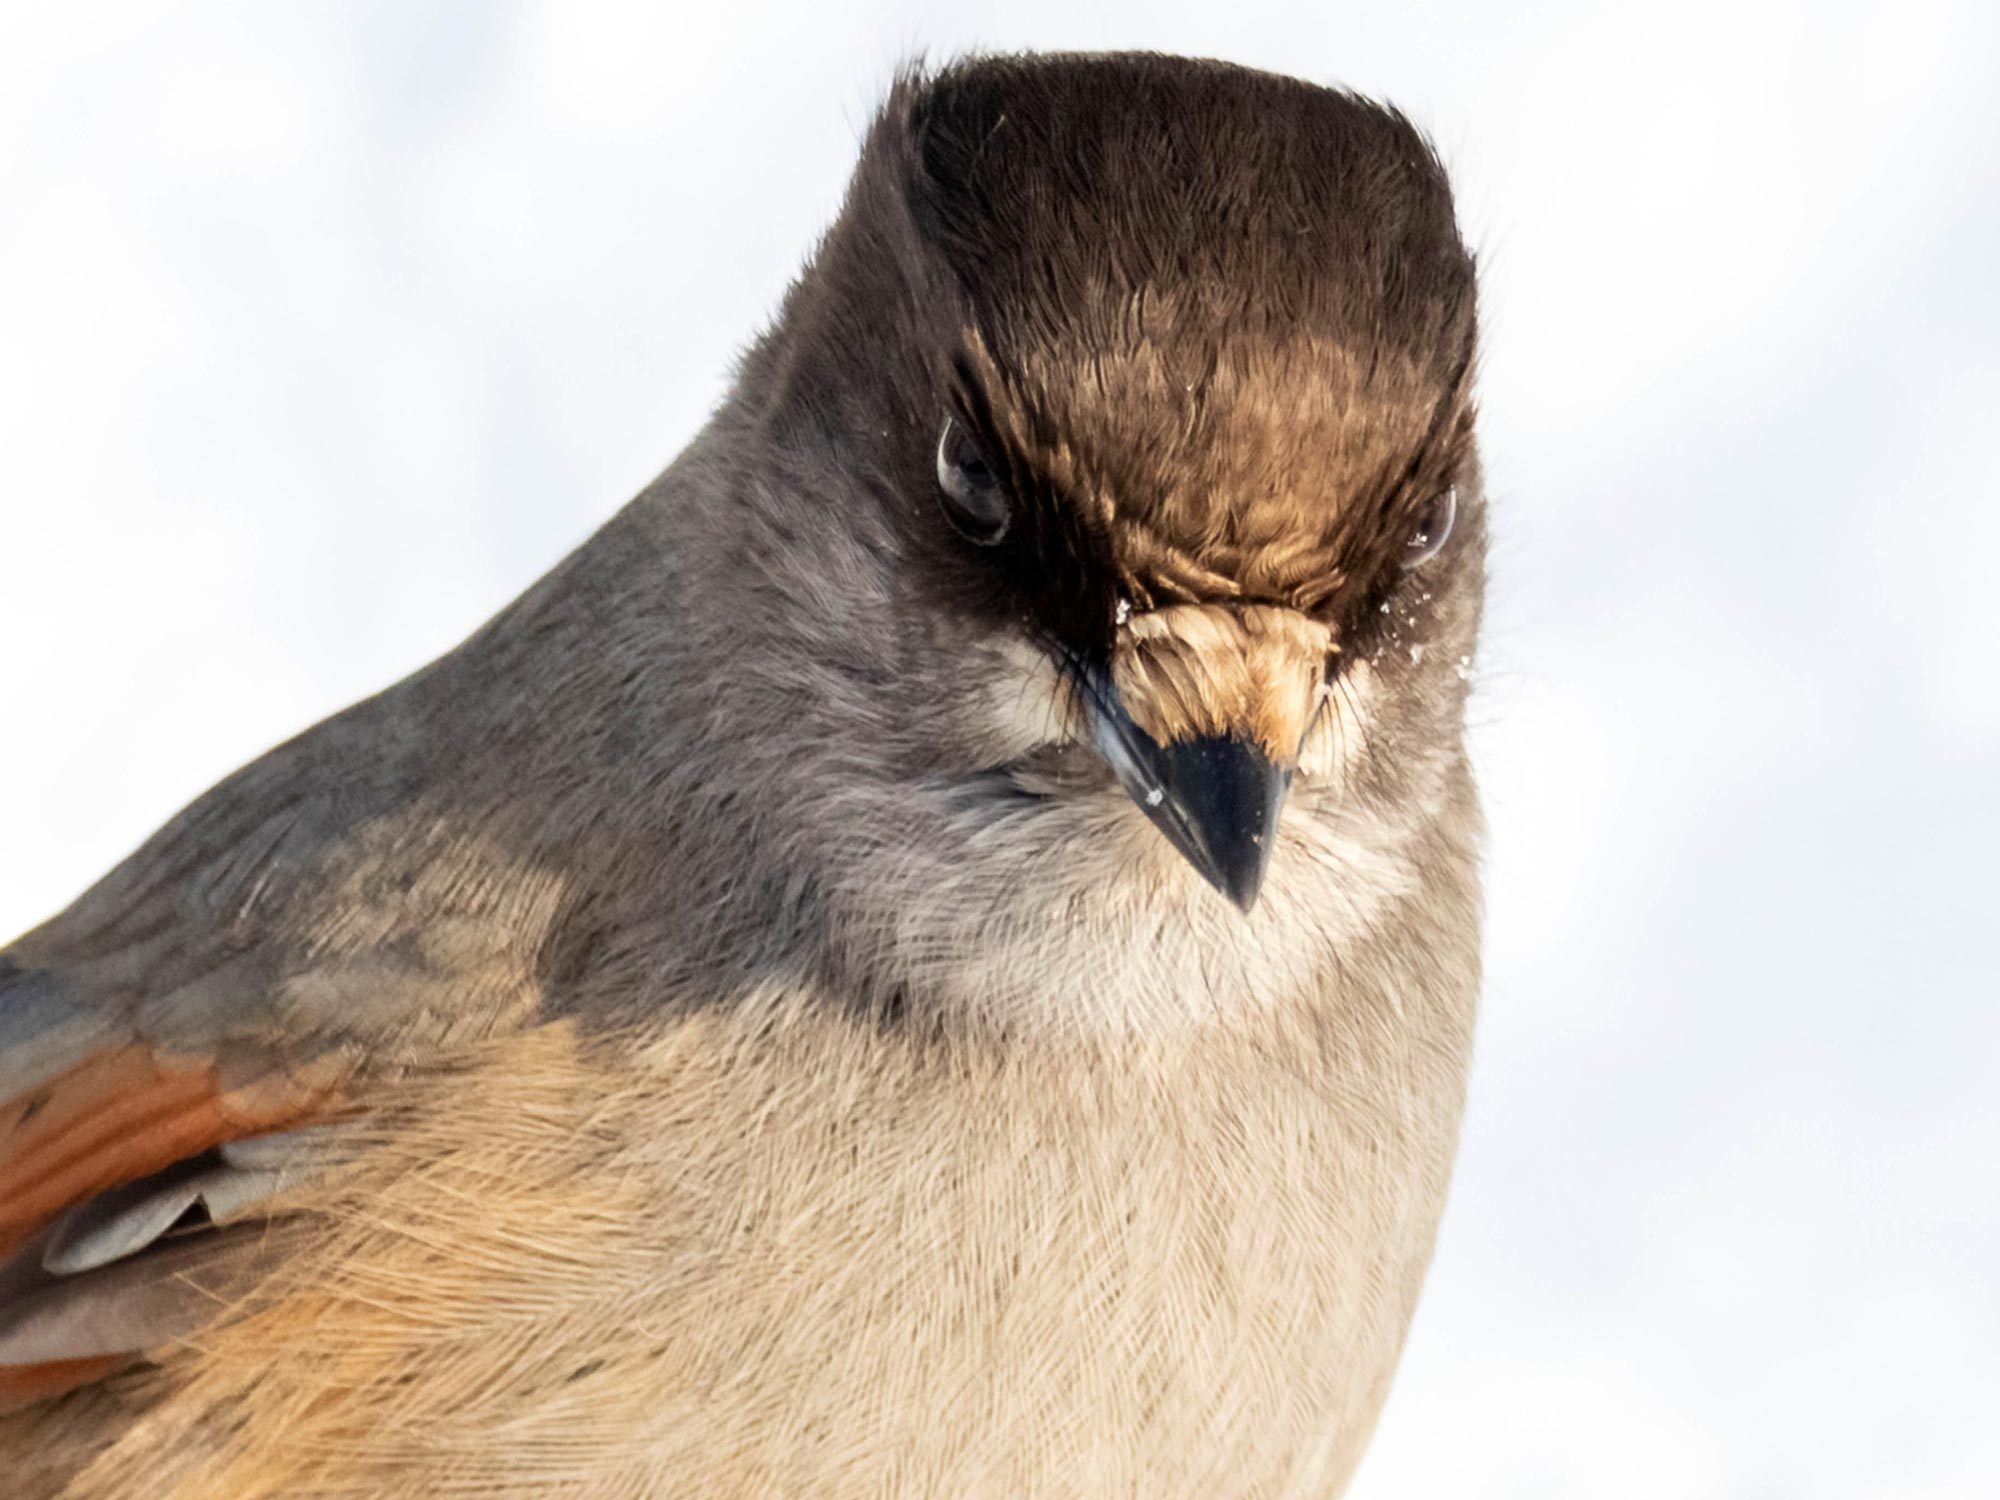 Deception and Lies: Wild Siberian Jays Use Social Knowledge to Avoid Being Tricked